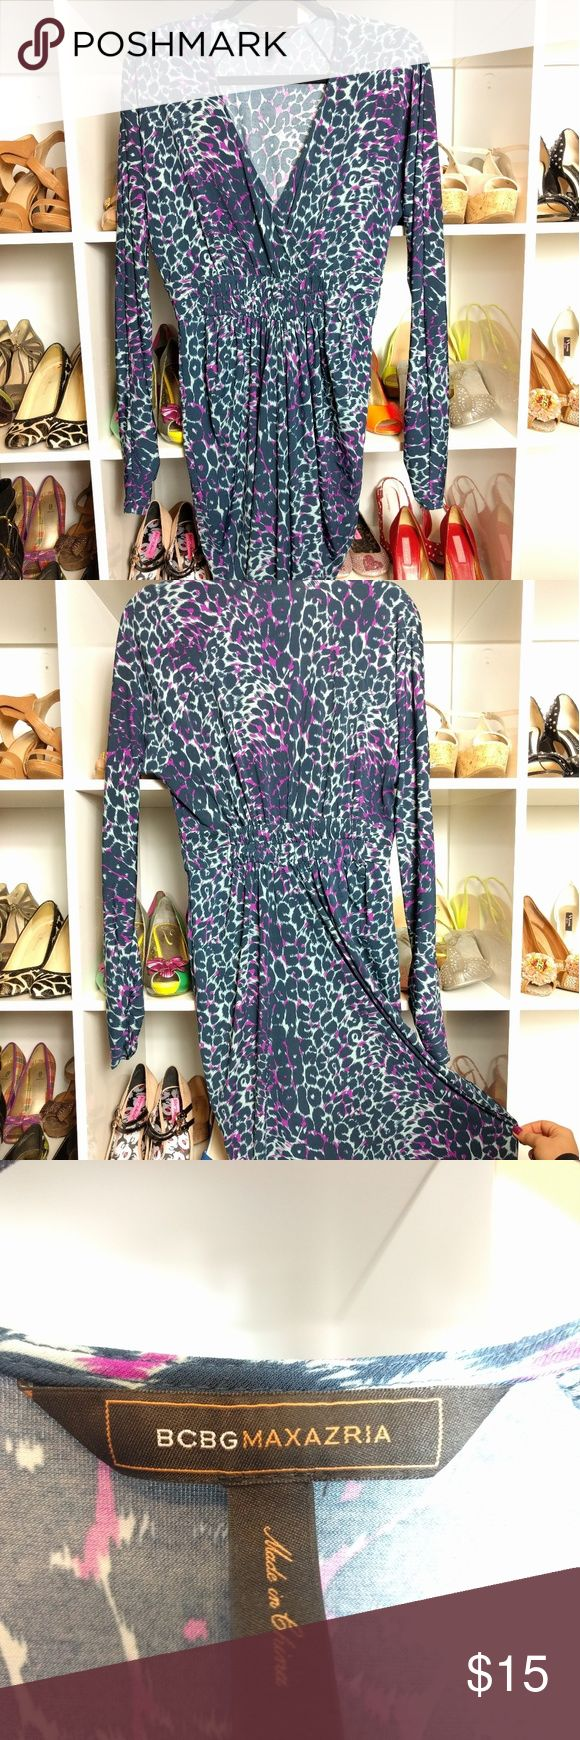 BCBG dress leopard long sleeve This BCBG MAX dress is blue and purple leopard like pattern with a shirred waisted middle and shirred lower section of the sleeves. BCBGMaxAzria Dresses Midi